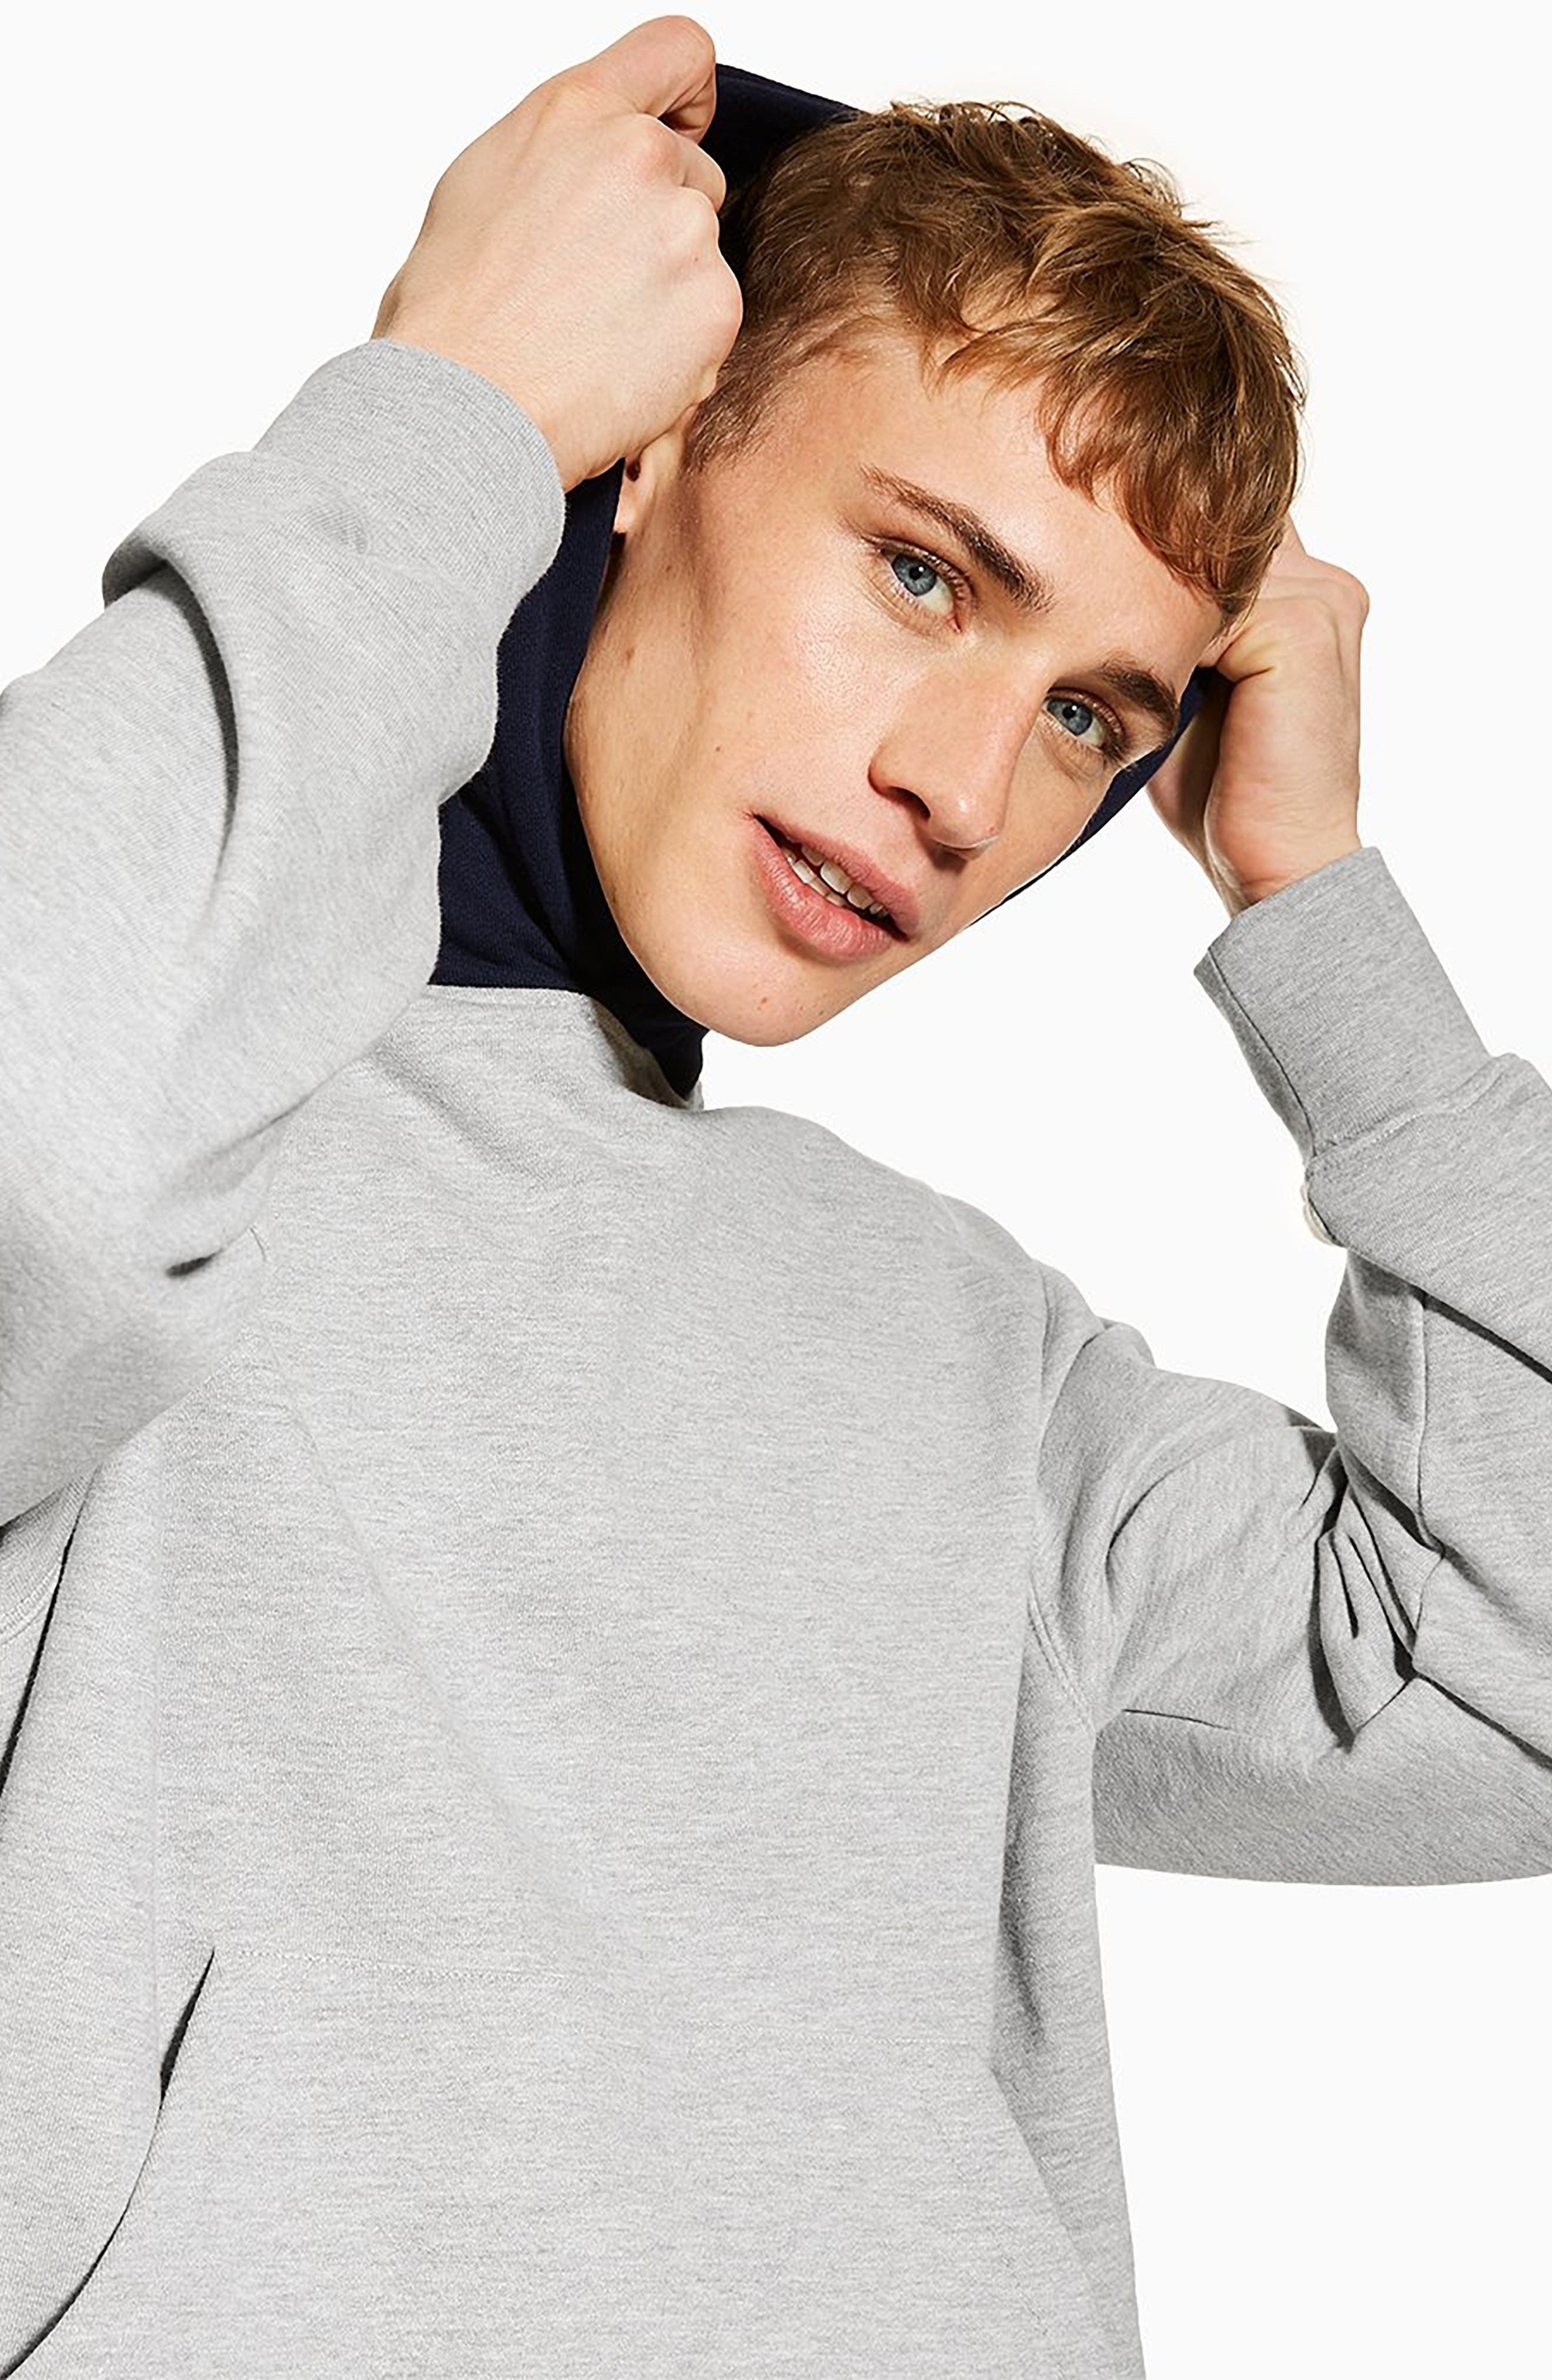 TOPMAN, Classic Contrast Hooded Sweatshirt, Alternate thumbnail 4, color, GREY